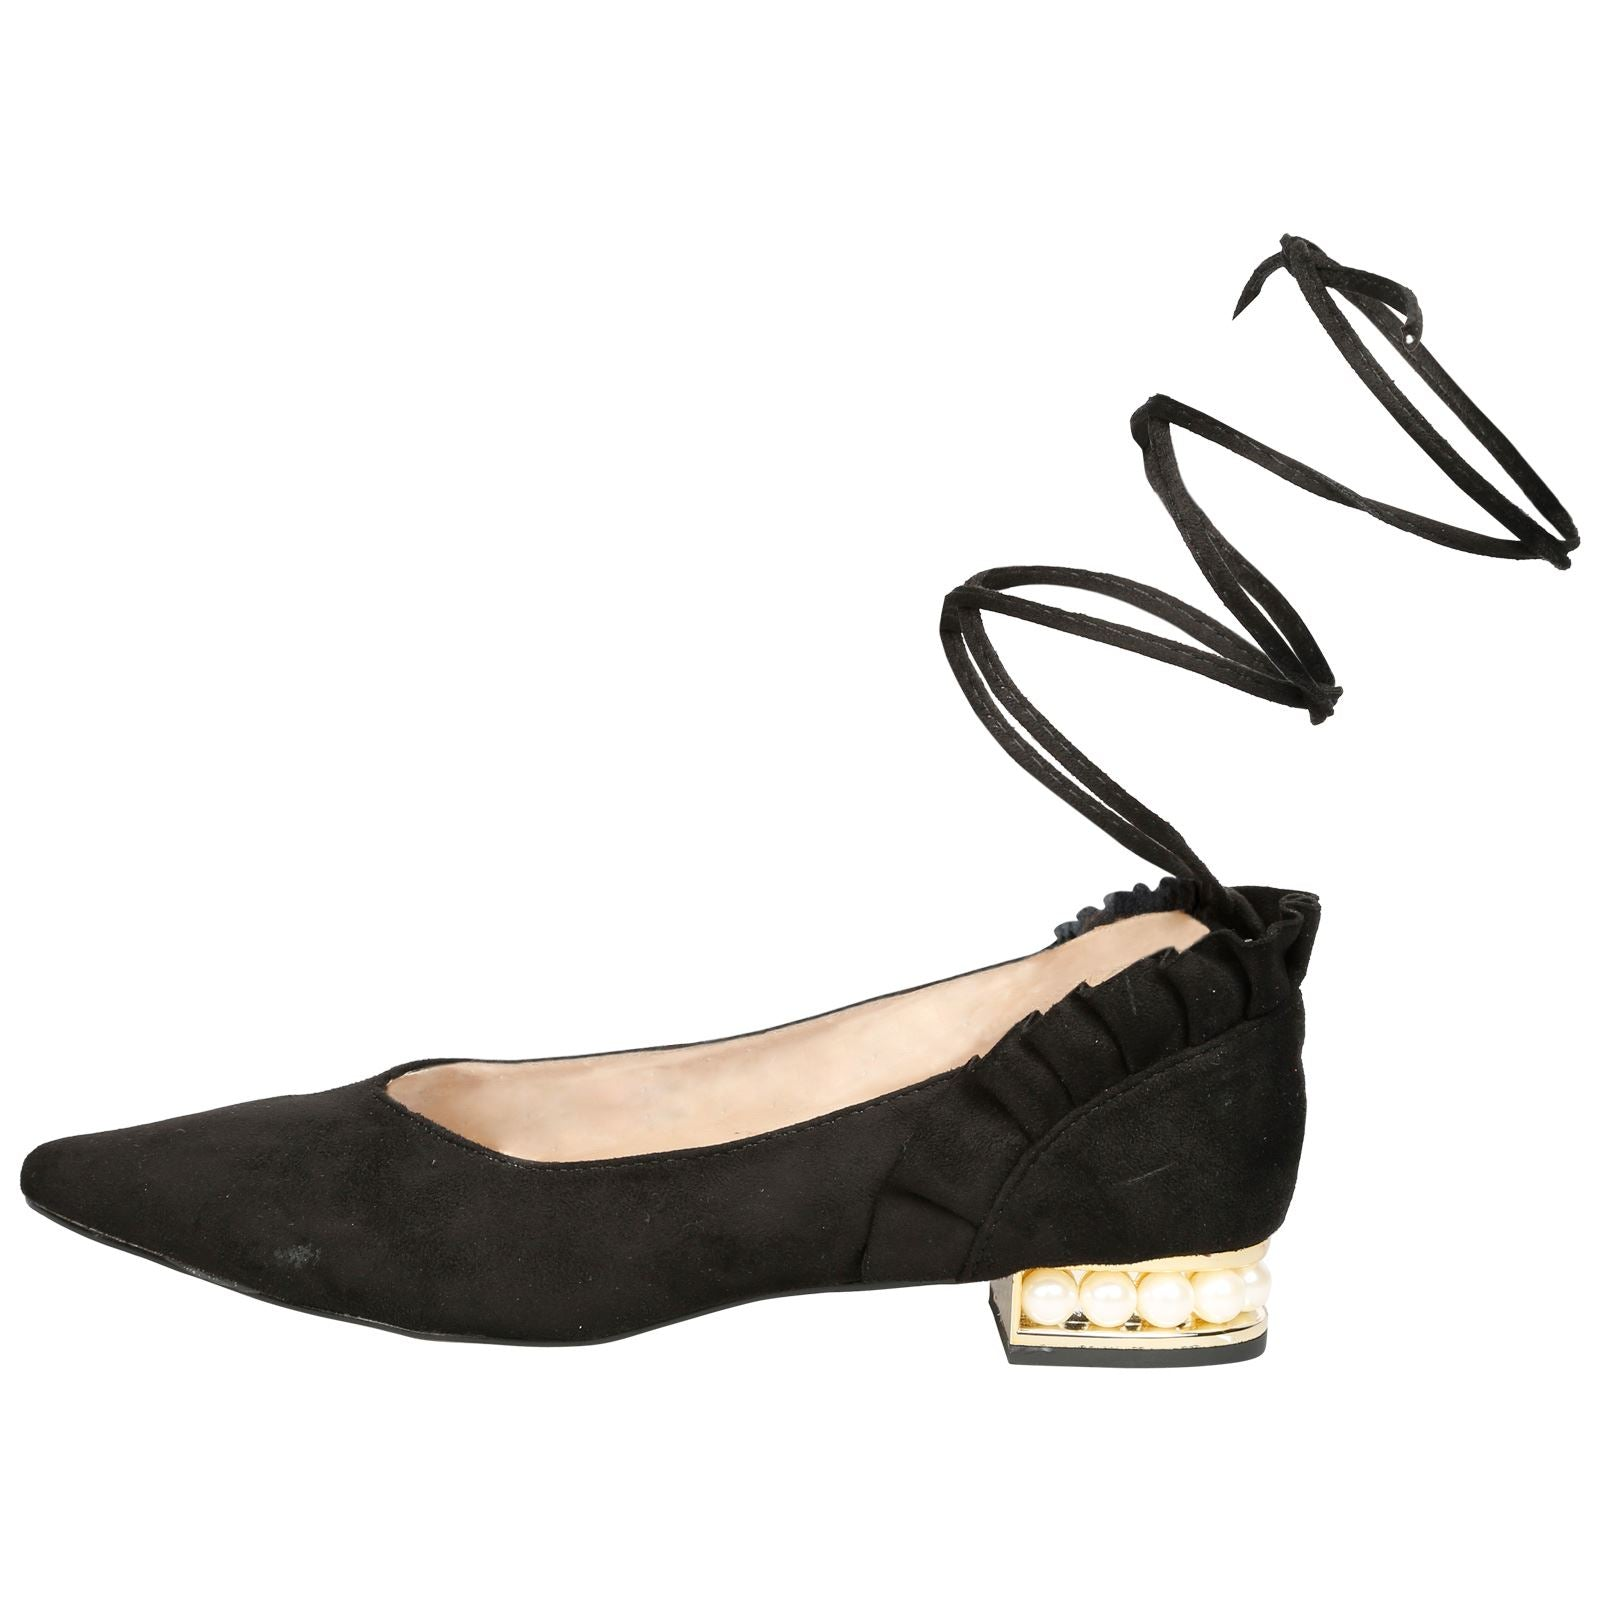 Jaelynn Lace Up Ballerina Flats in Black - Feet First Fashion